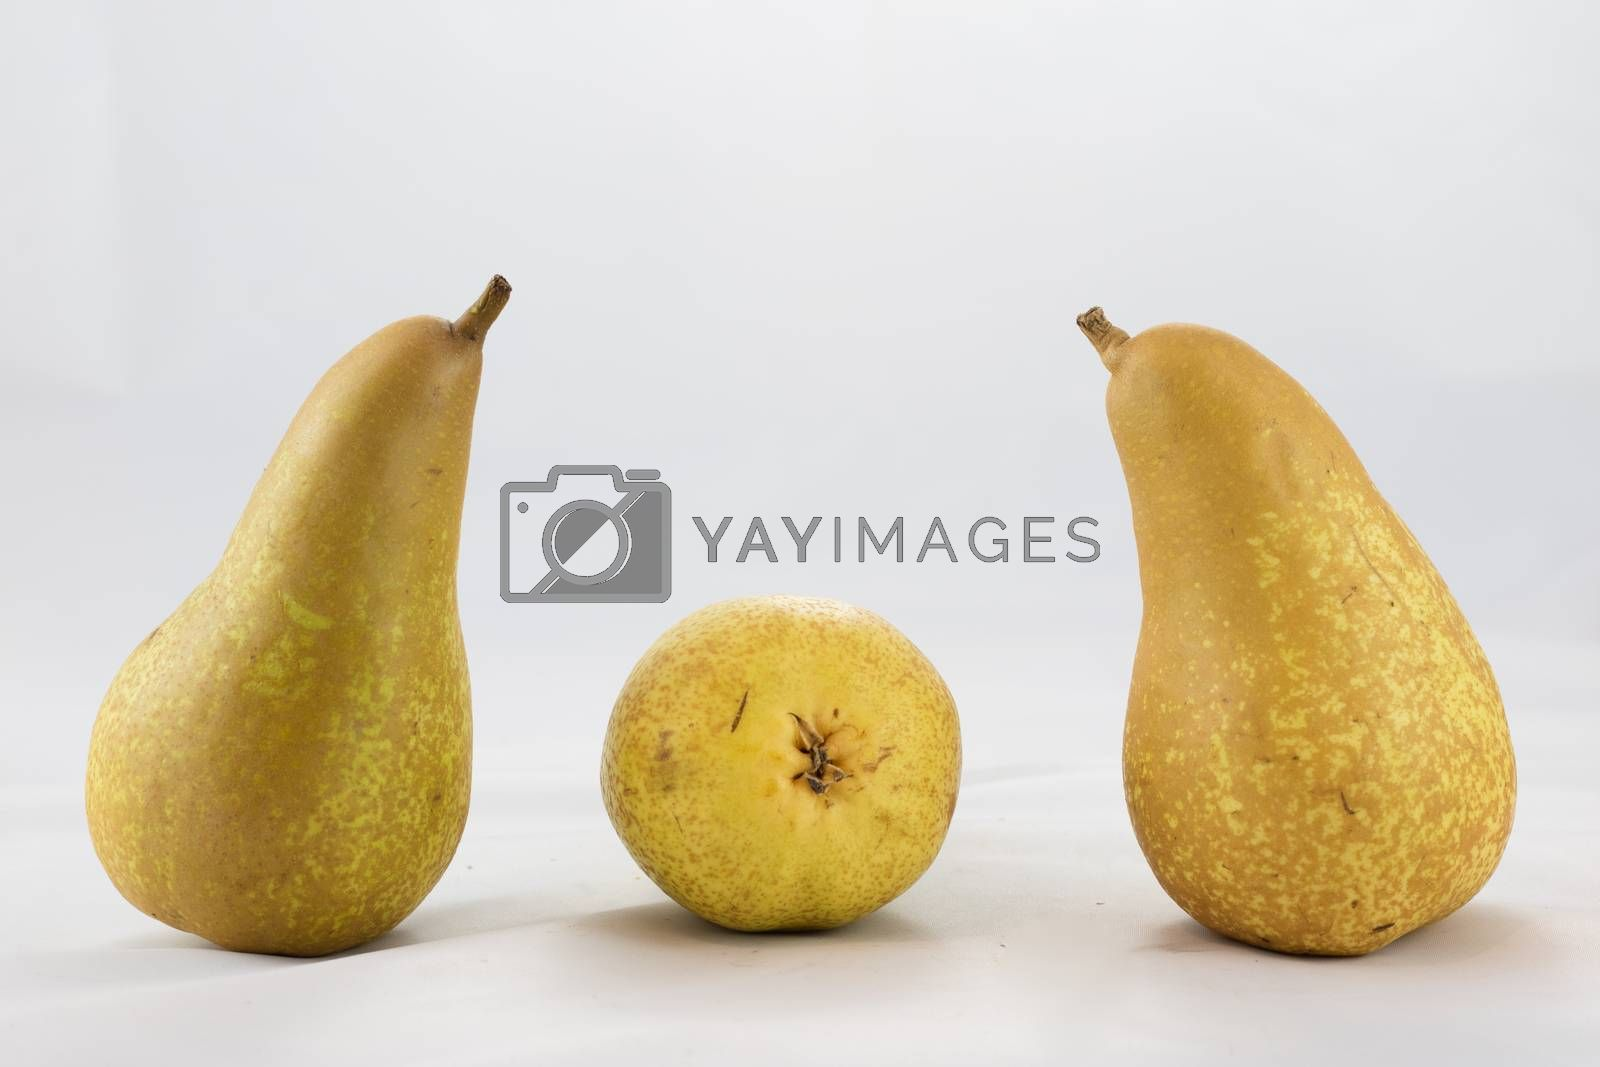 Delicious, delicious ripe apples and pears on a white background by wytrazek